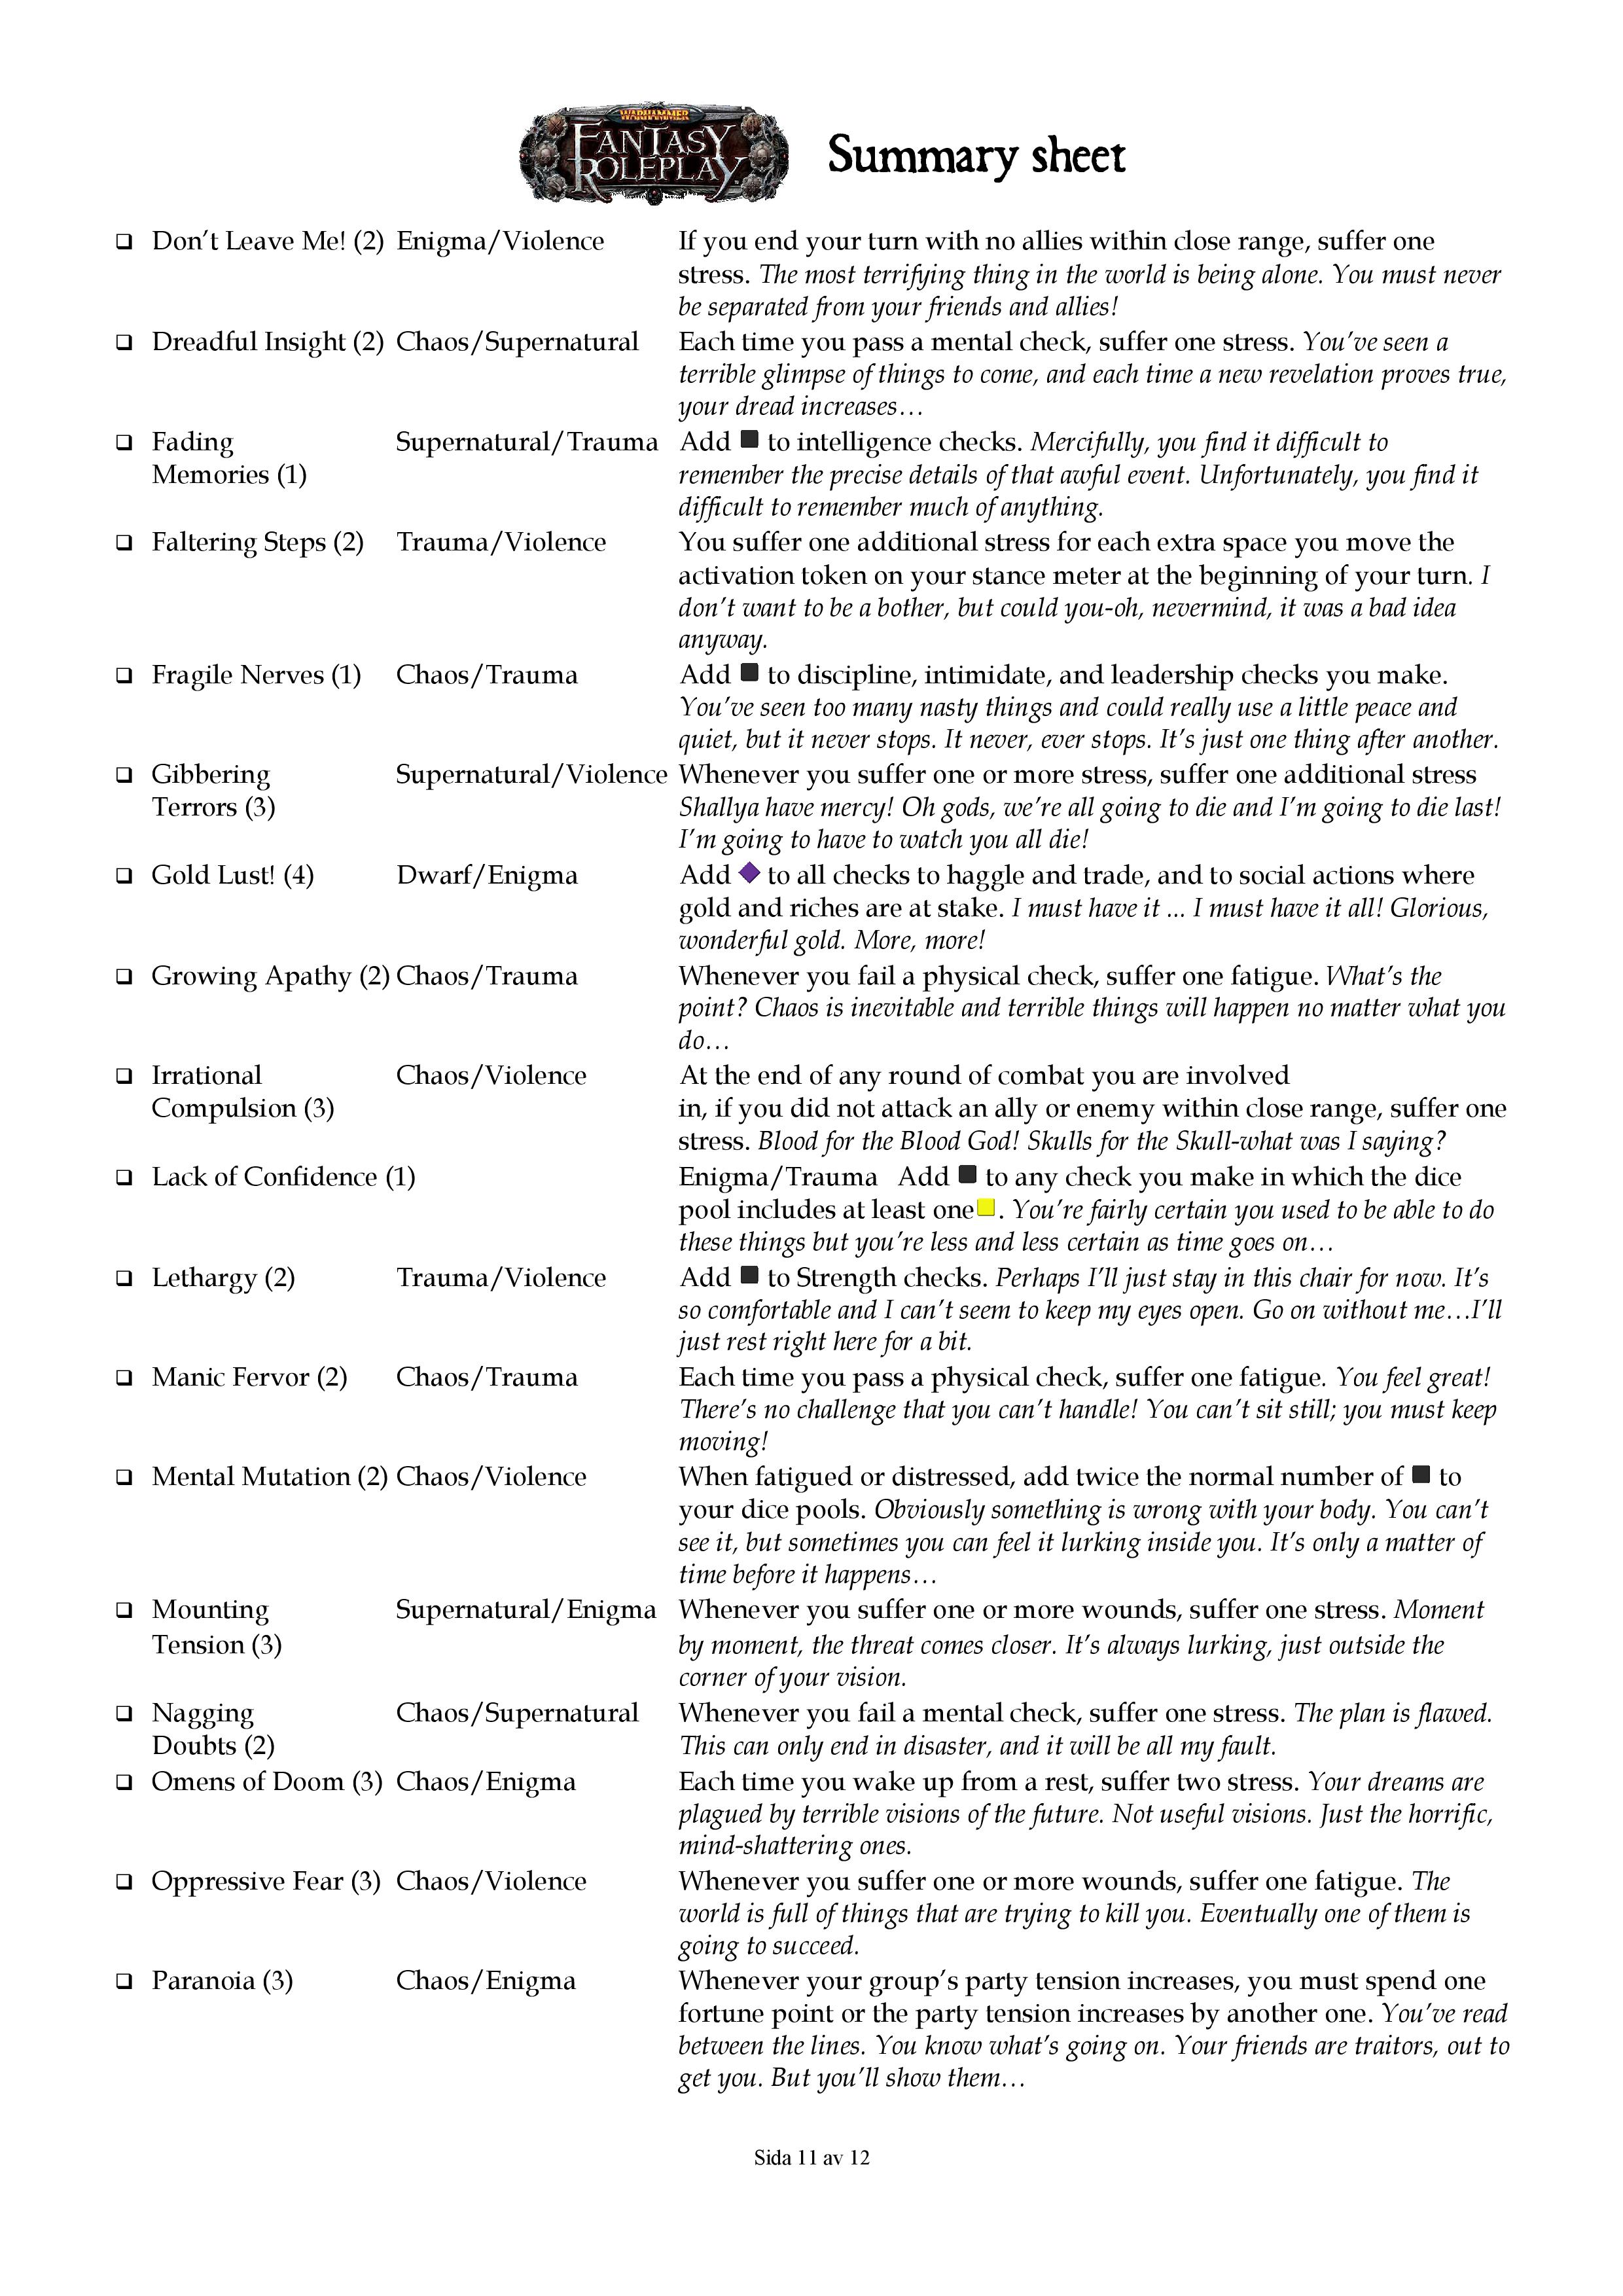 WFRP_3ed_Summary_Sheet_-_Players-page-011.jpg